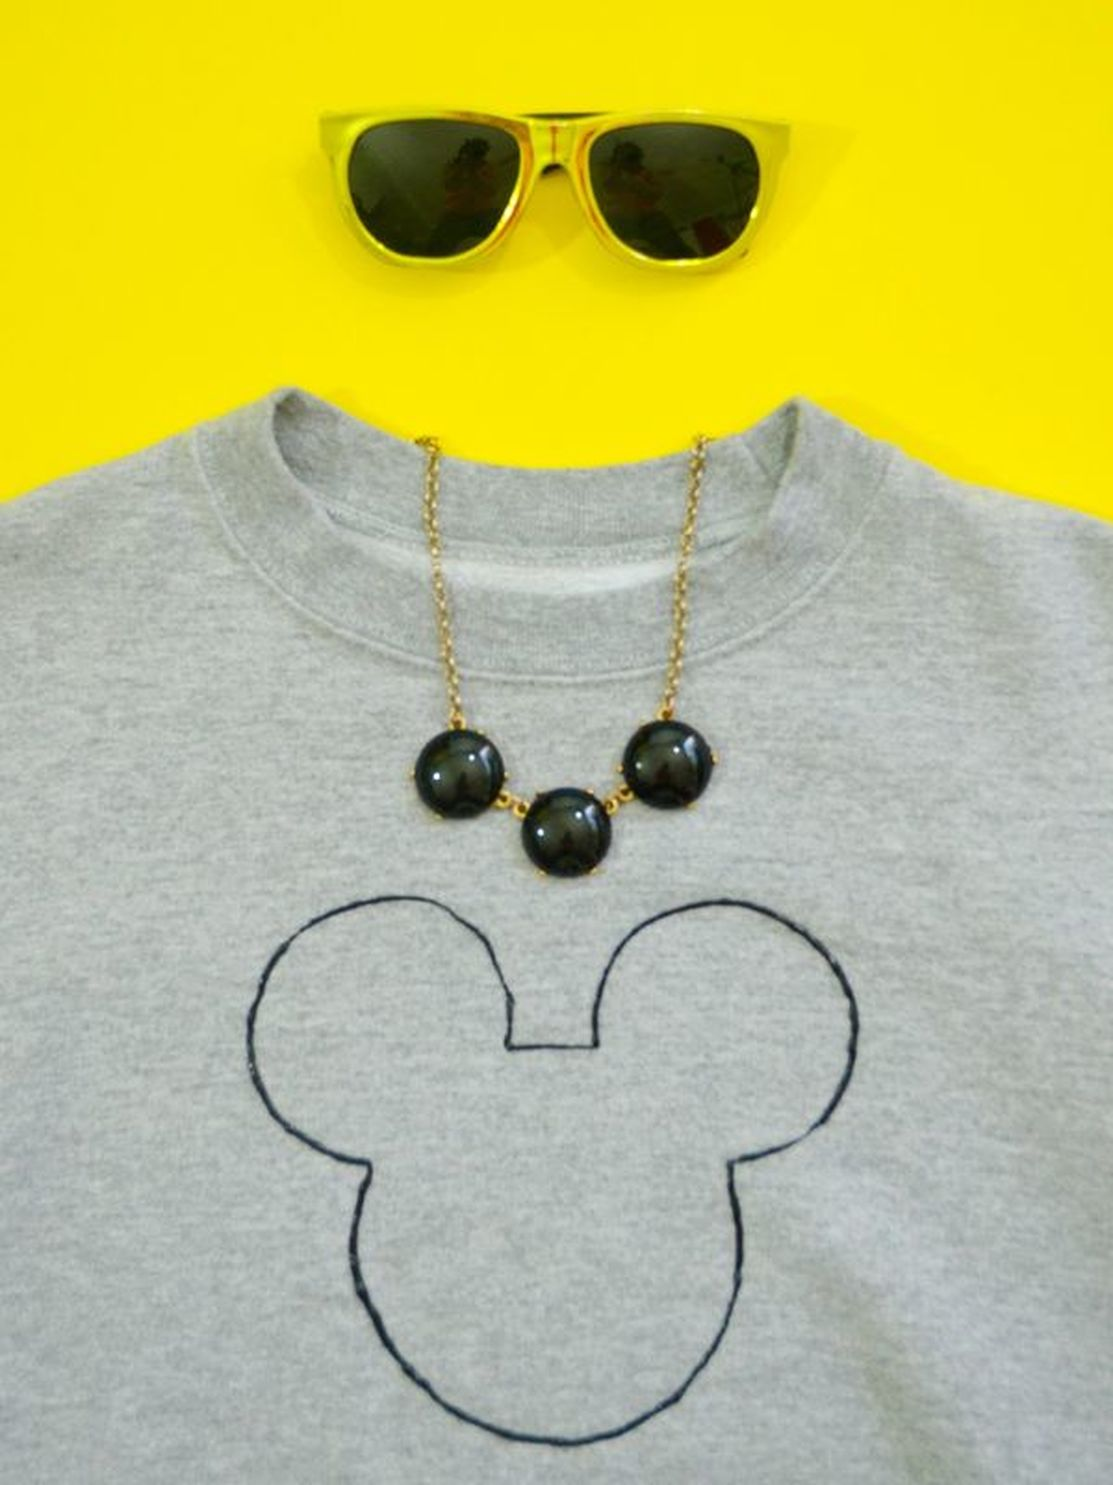 DIY Minimalist Mickey Mouse Sweatshirt